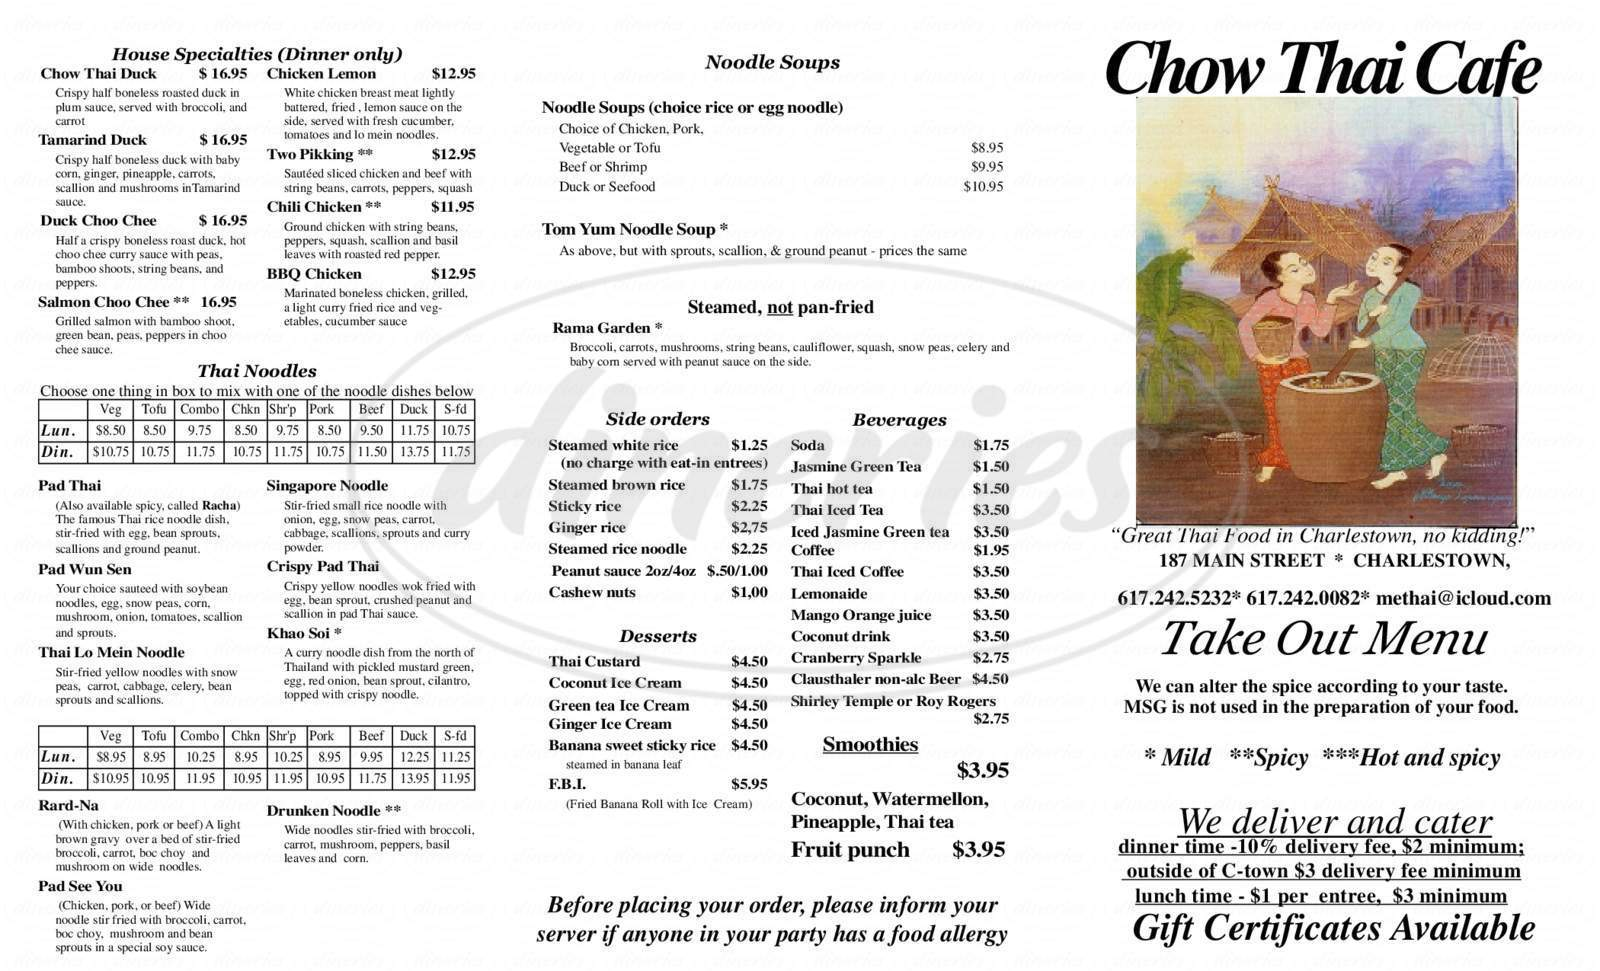 menu for Chow Thai Cafe